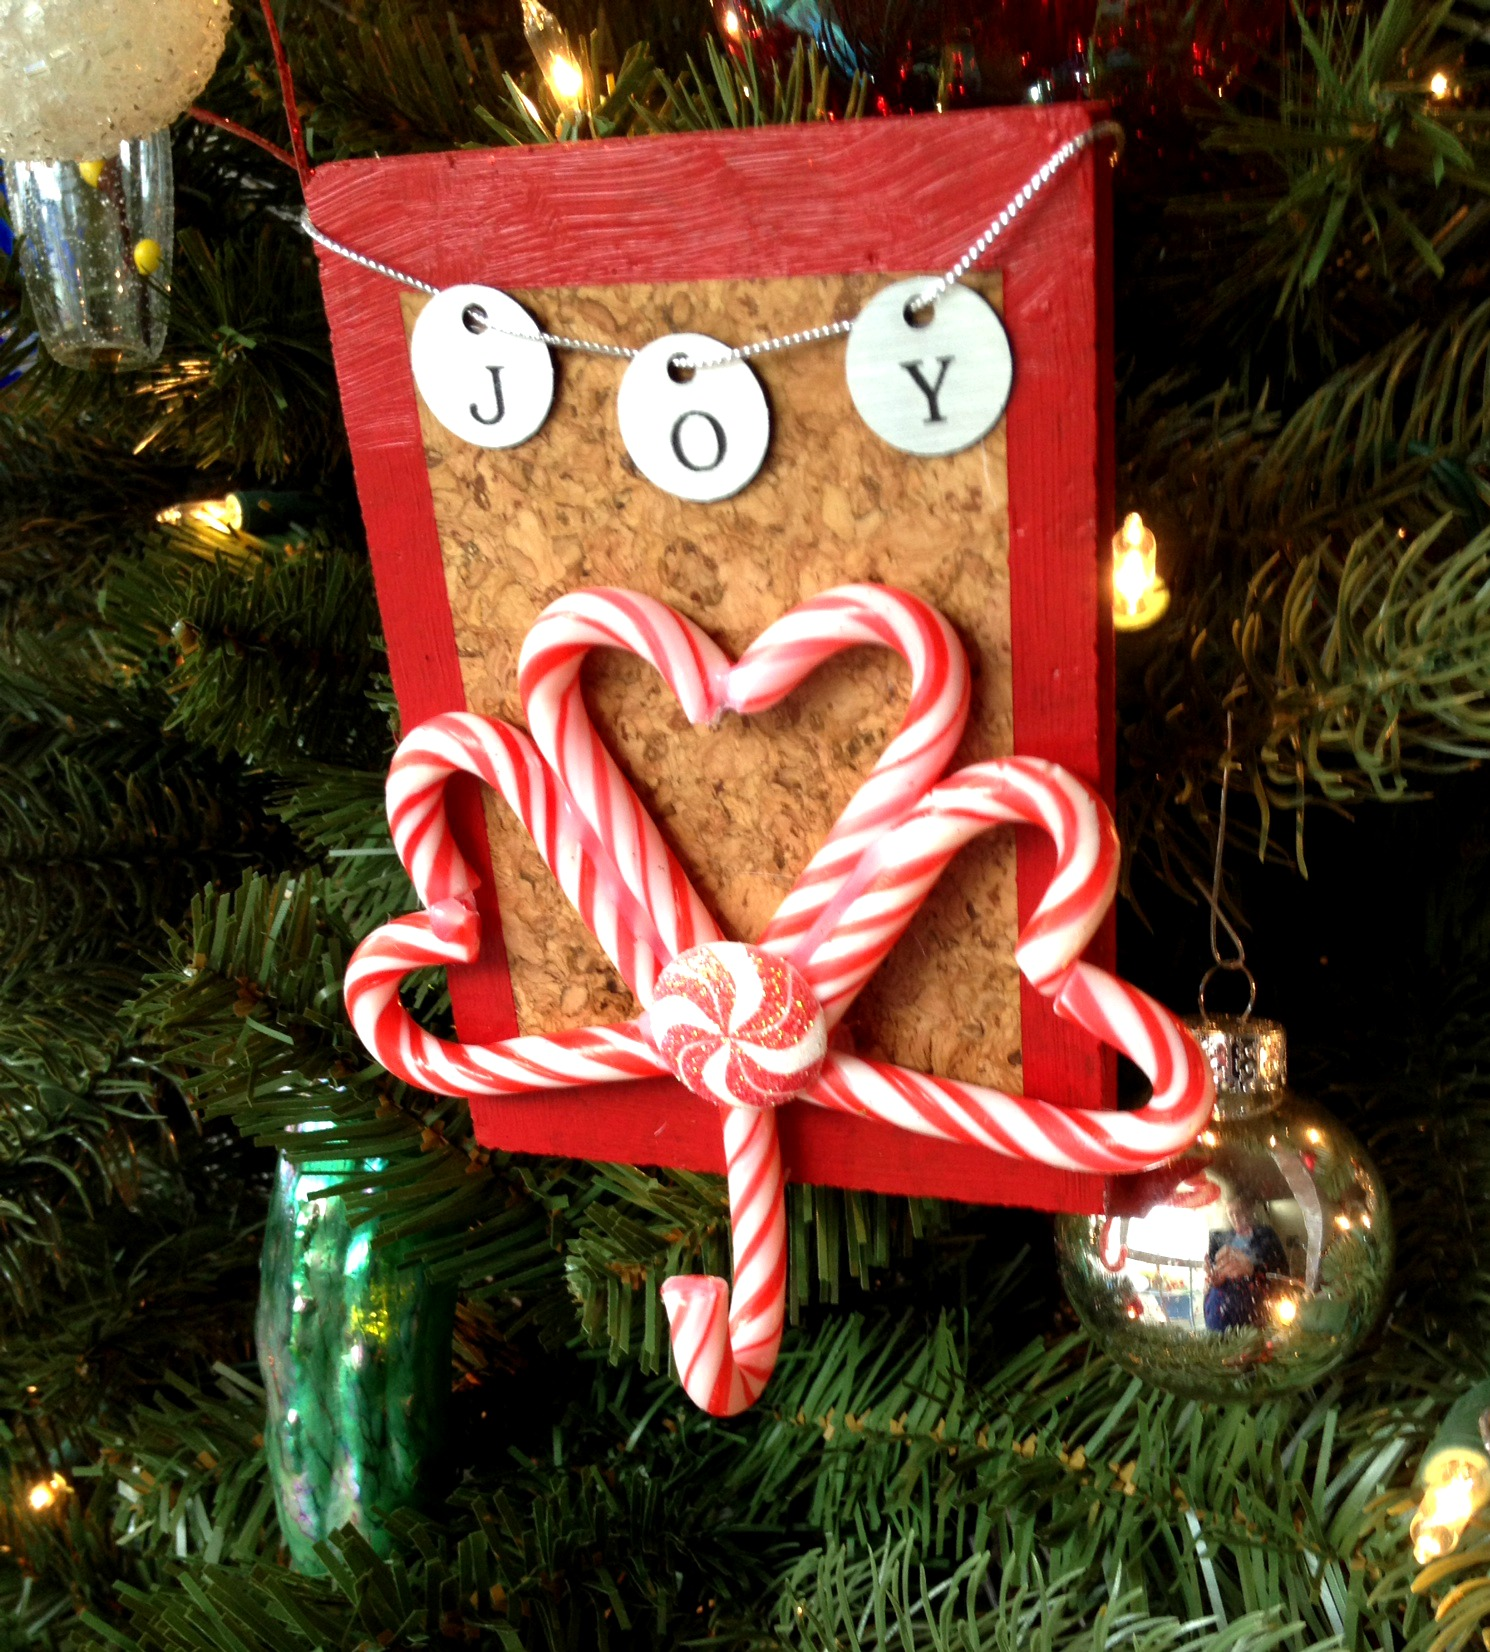 Heavy duty ornament hooks - Your Candy Cane Hook Is Ready For Duty Remember It S Only As Strong As The Candy So Don T Hang Anything Heavy On It Alternately Use It As An Ornament